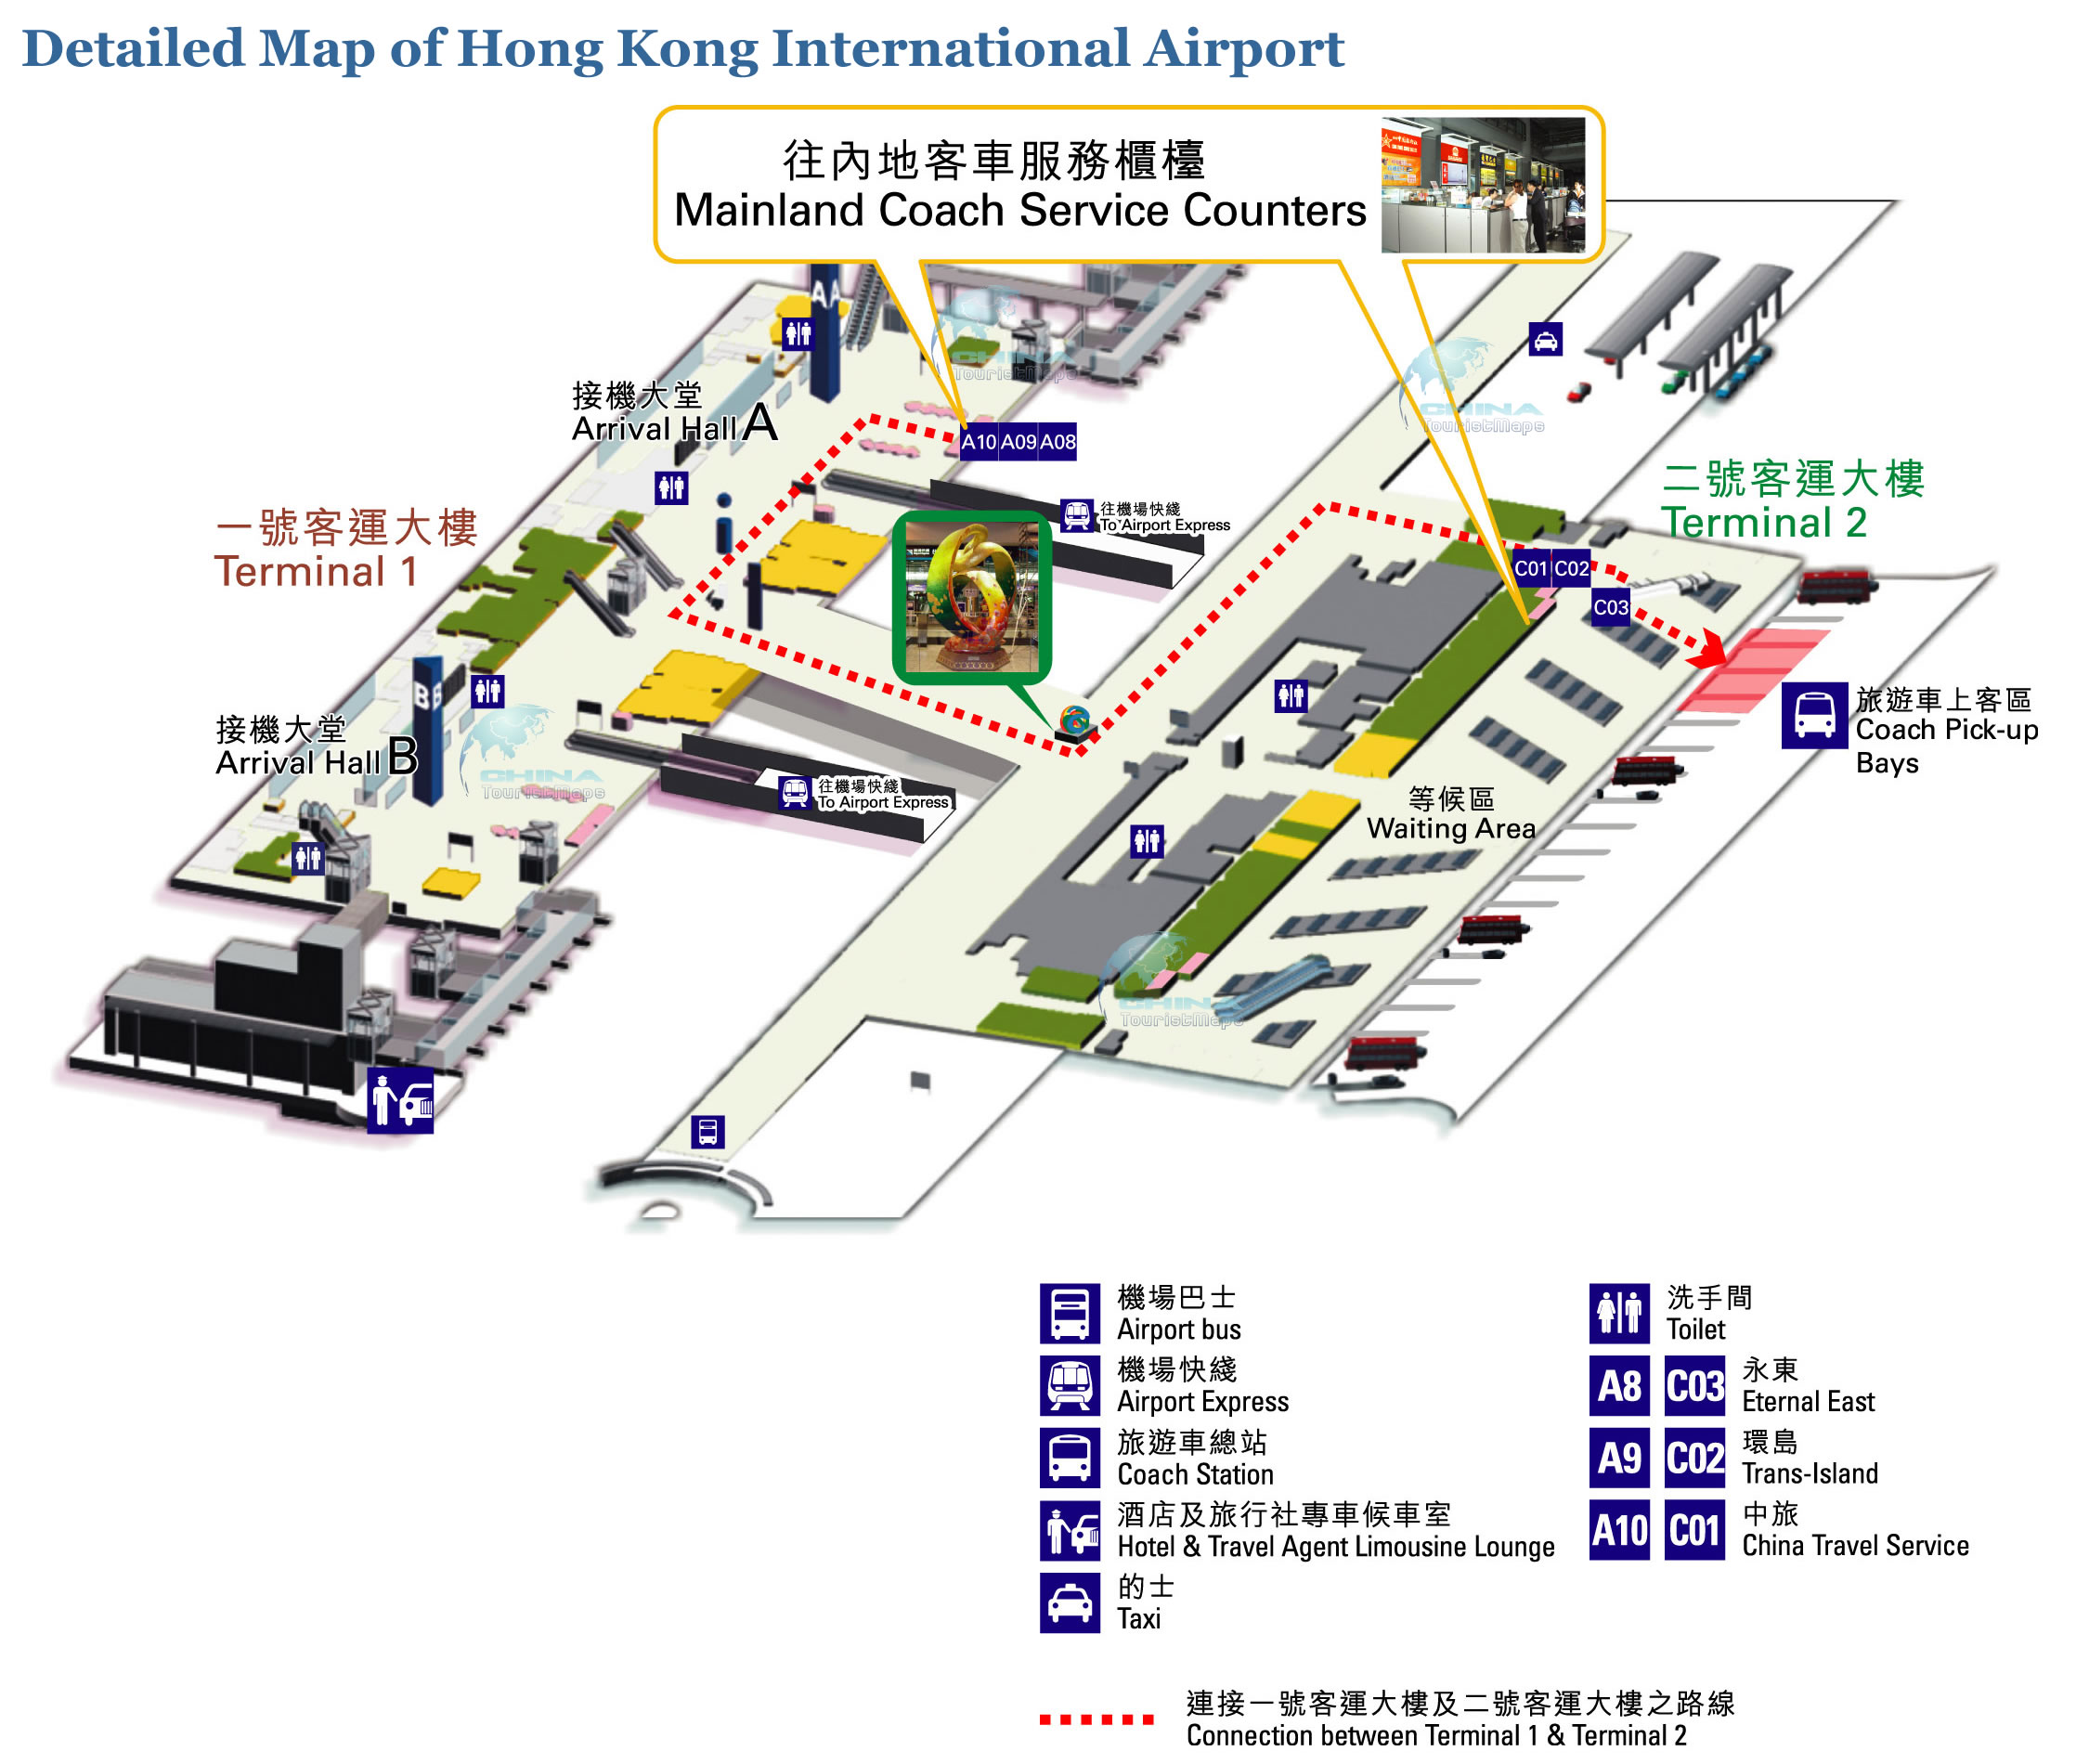 hong kong airport arrivals hong kong airport departures. Black Bedroom Furniture Sets. Home Design Ideas